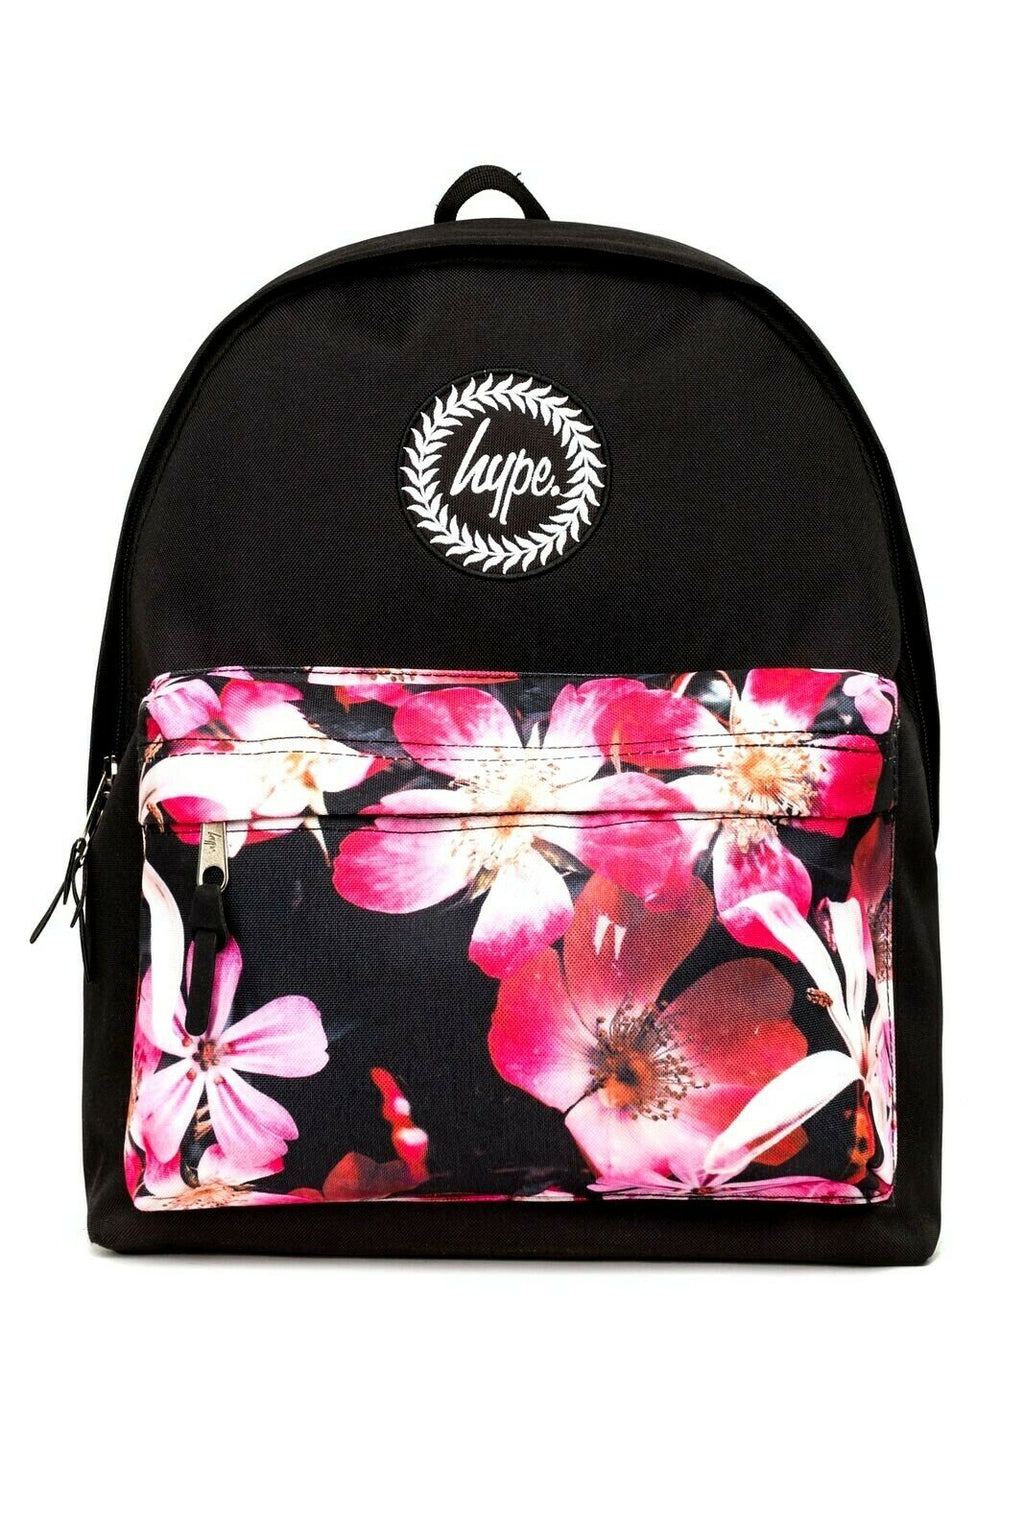 Floral Pocket Backpack - Black/Multi